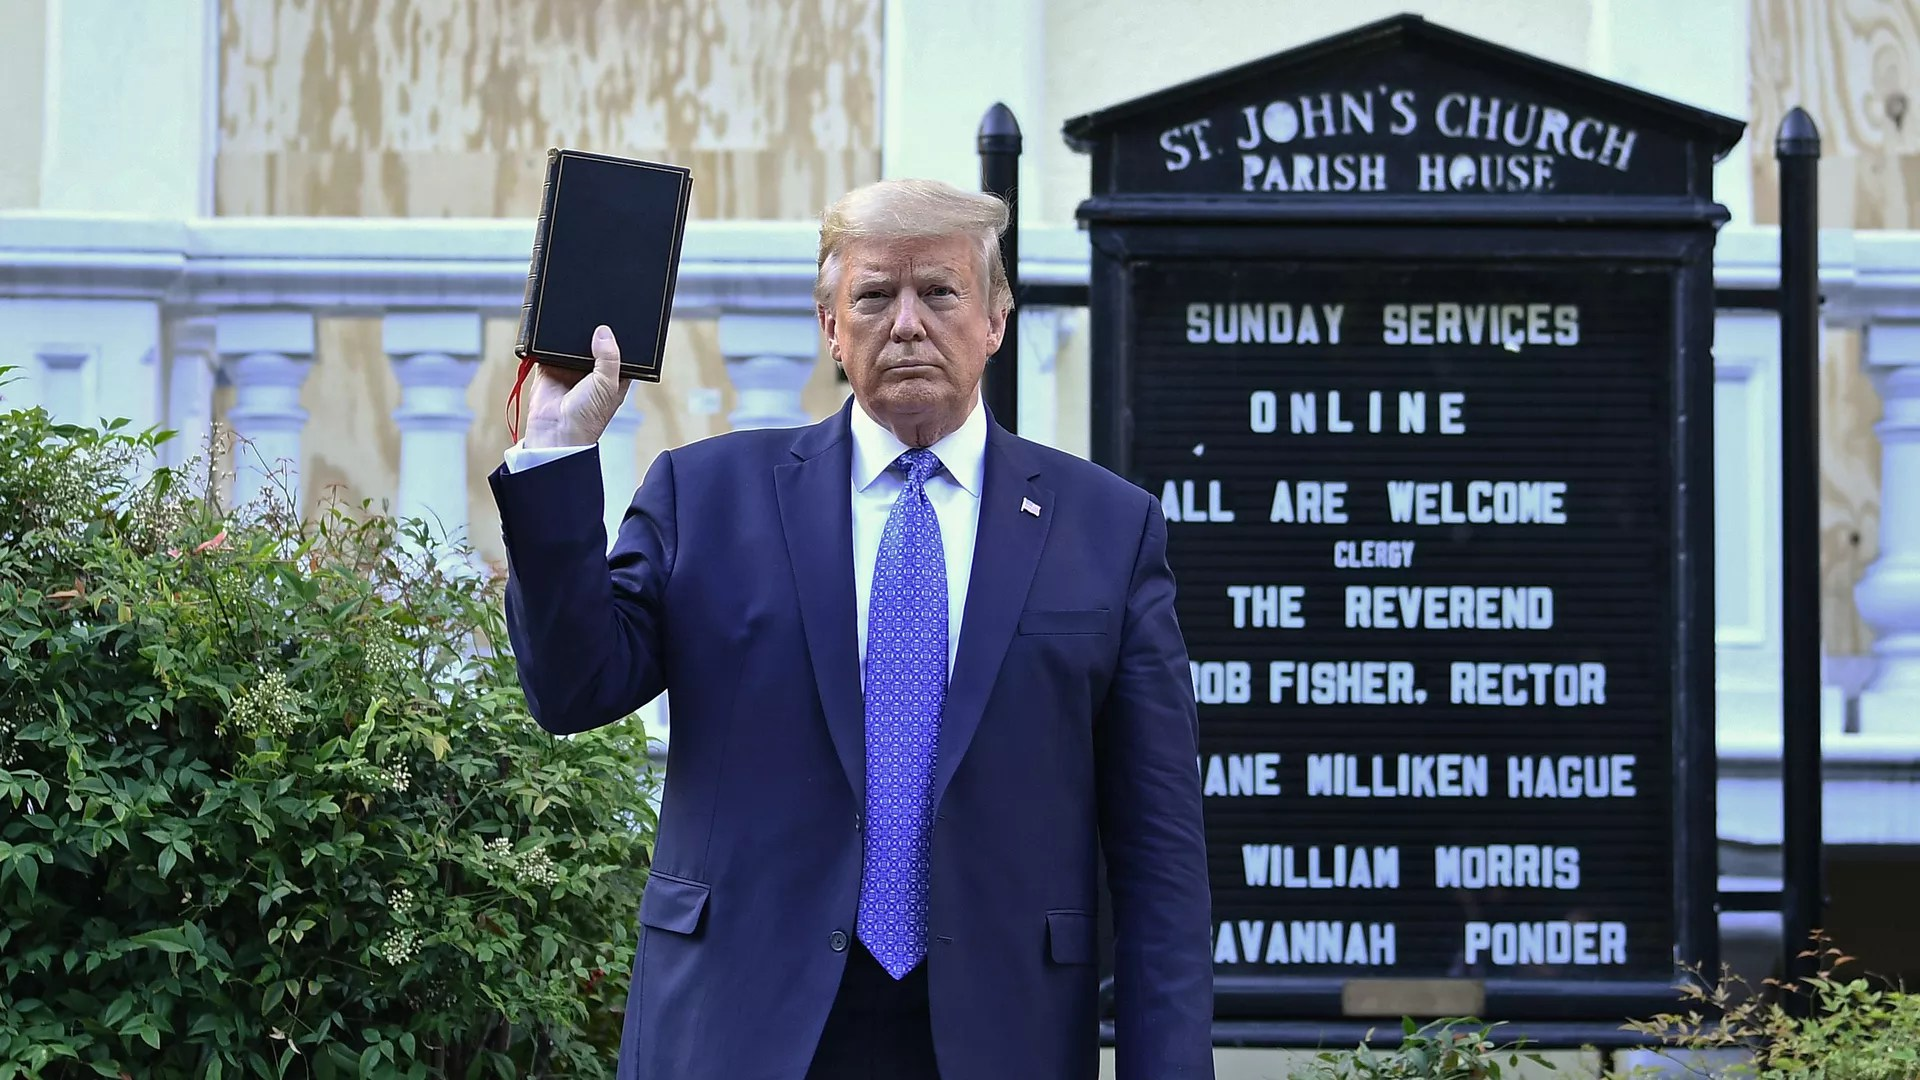 St. John's clergy: Trump used church as prop, Bible as symbol of division -  Axios